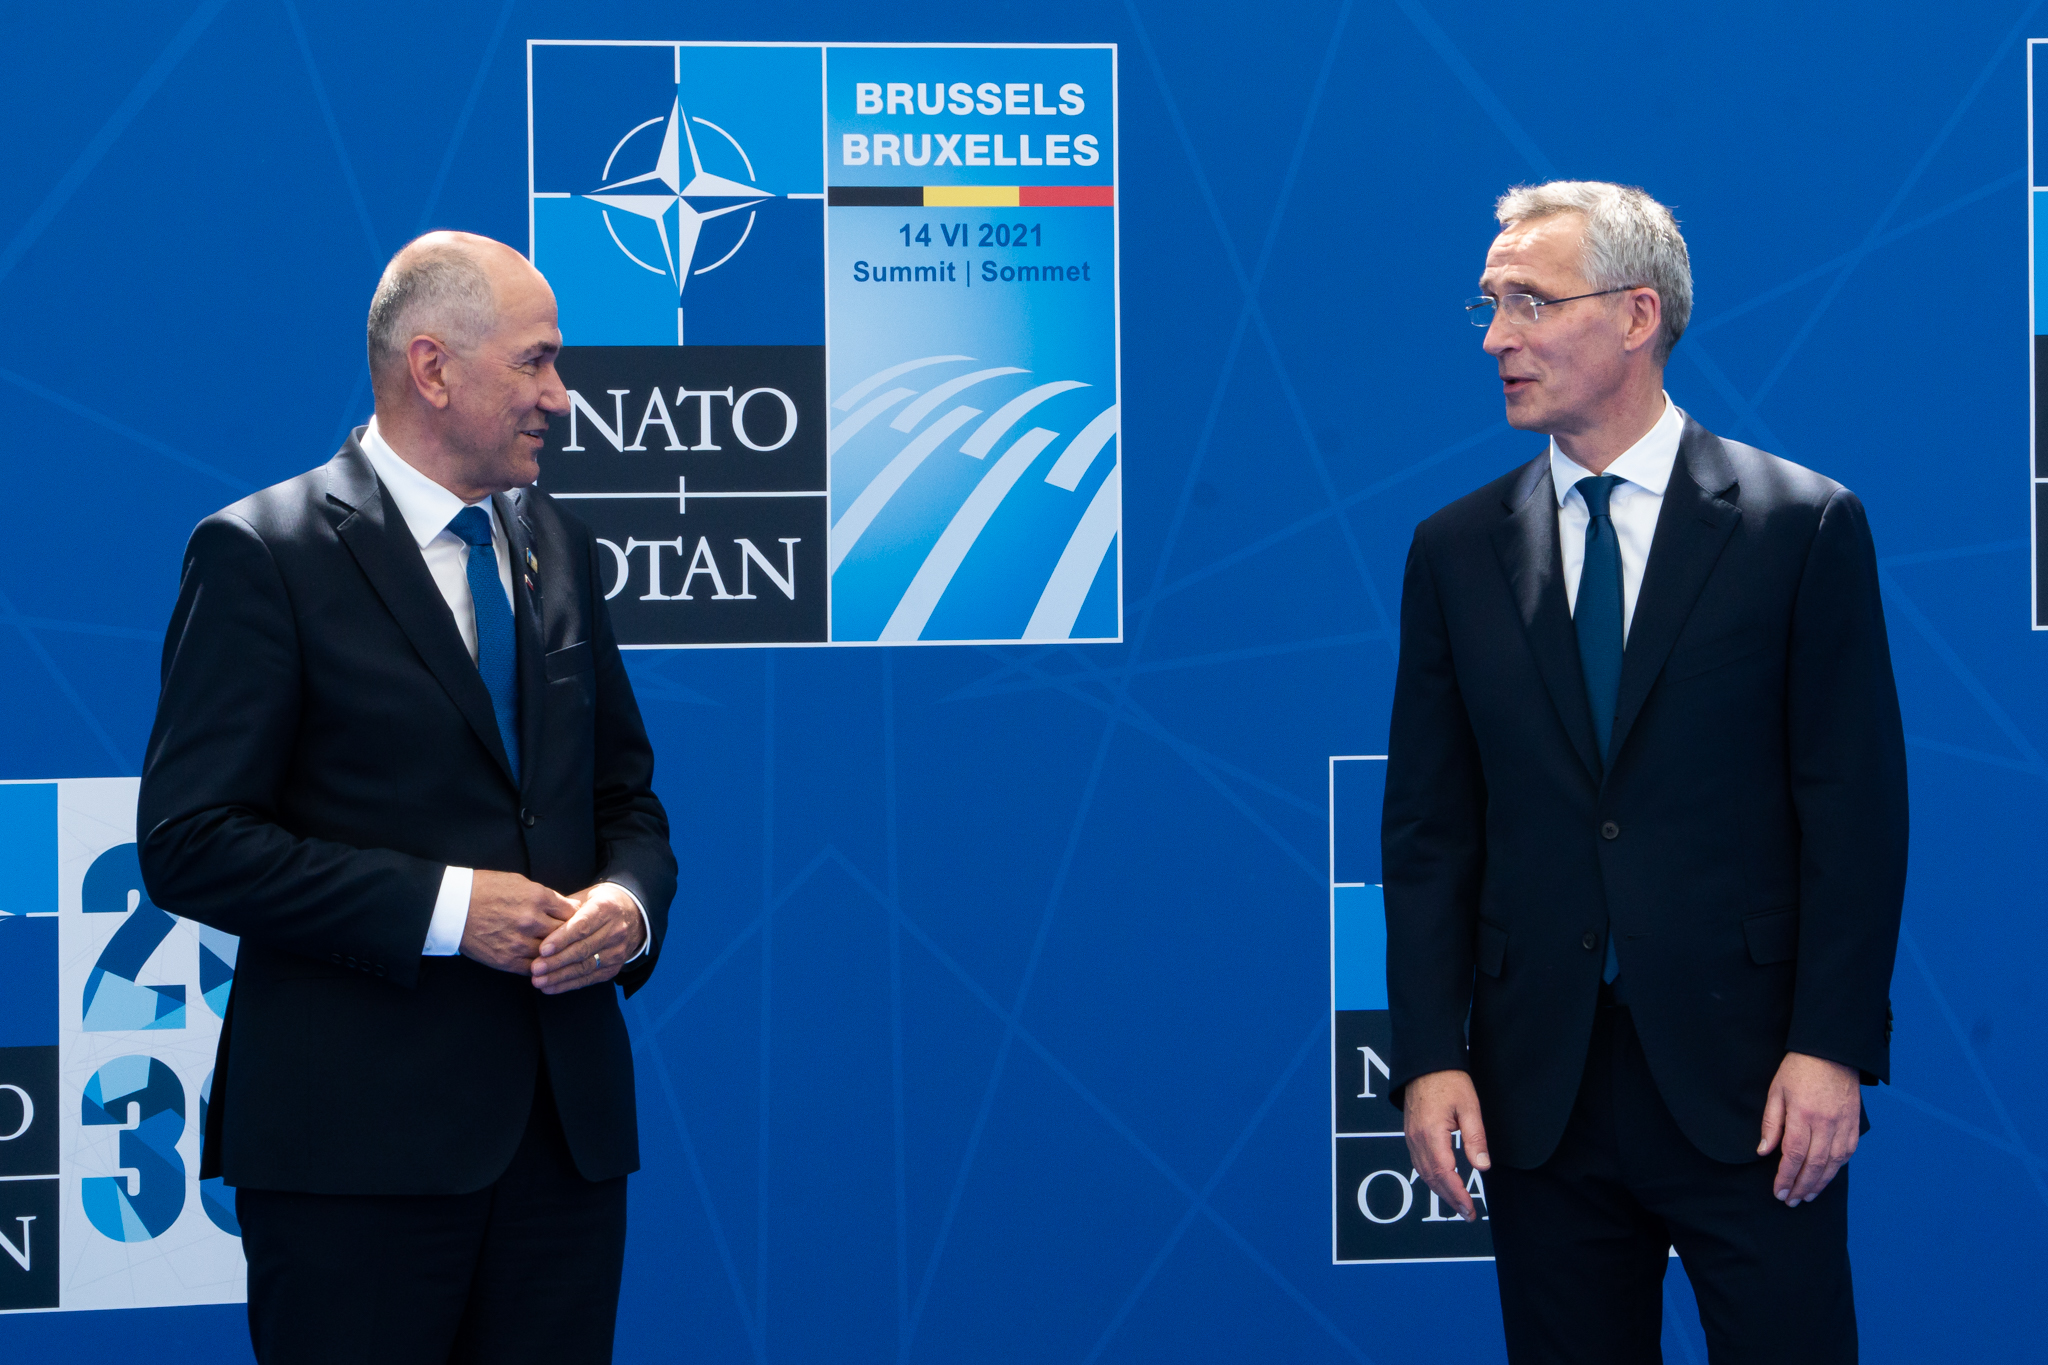 Slovenia: If NATO does not expand, someone else will, says Janša